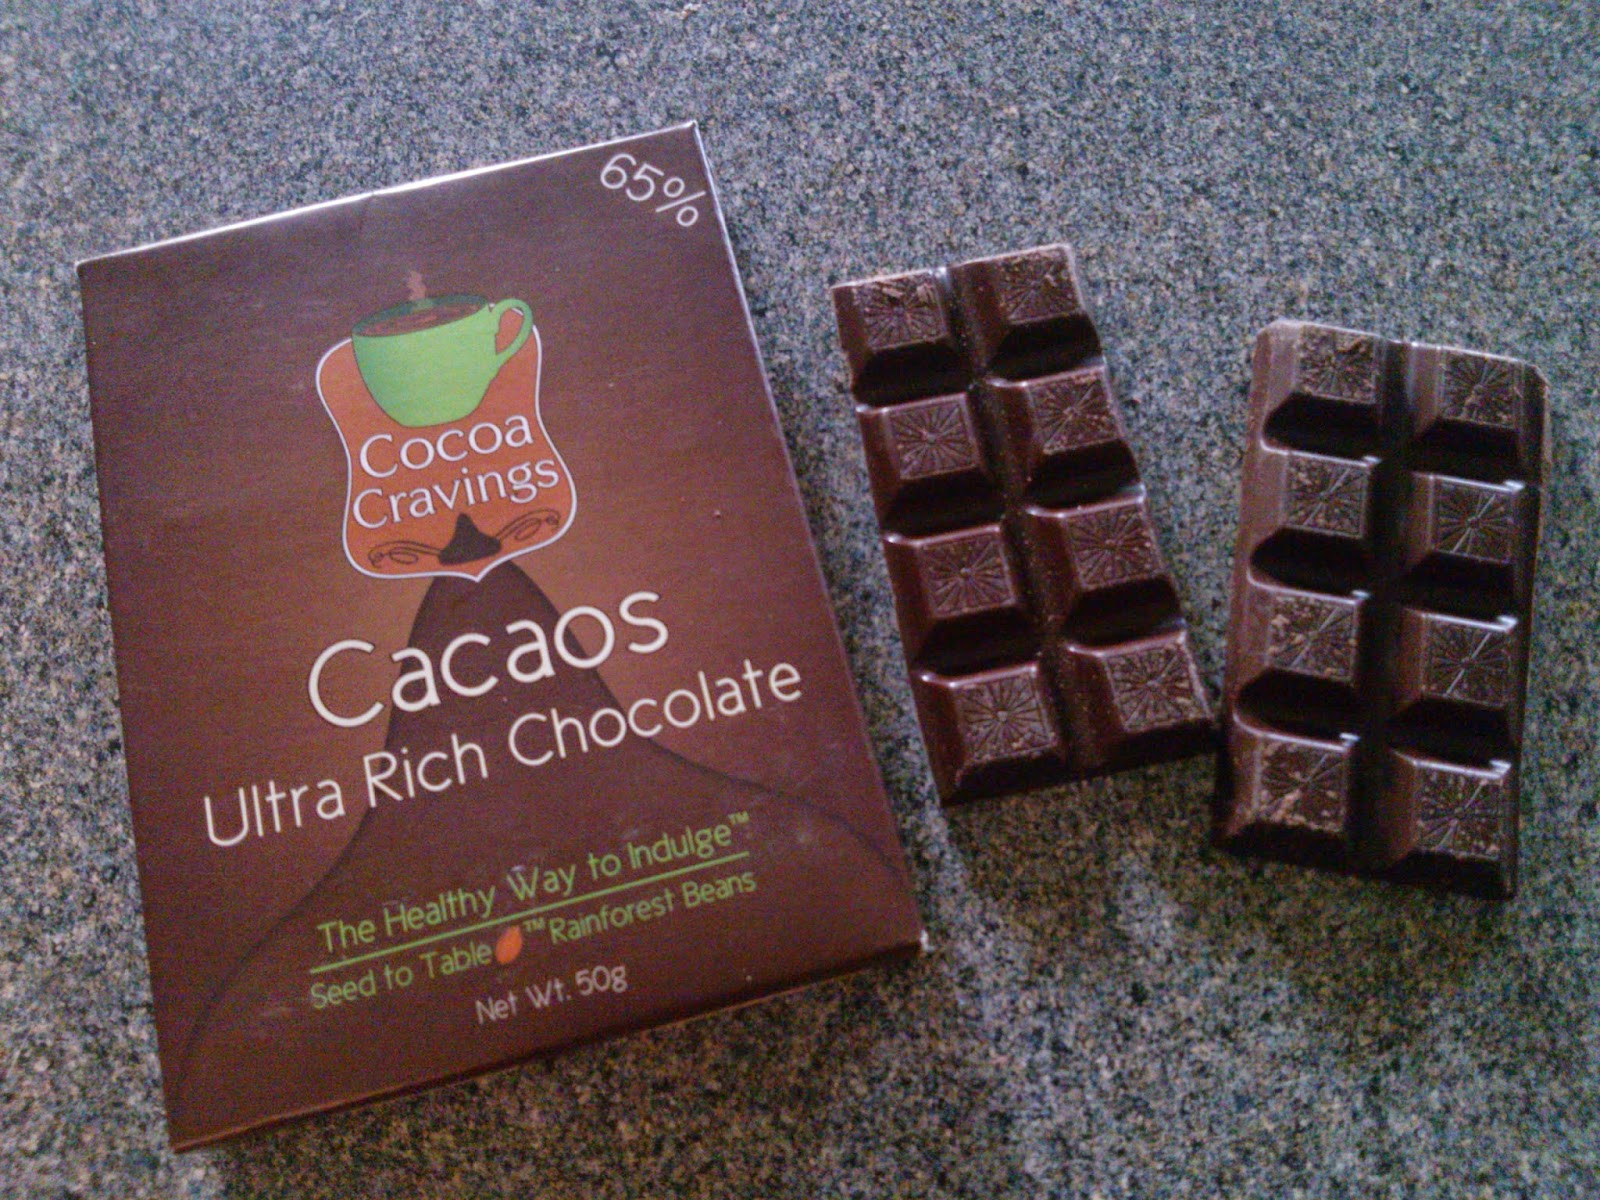 Cocoa Cravings Gourmet Dark Chocolate Review & Giveaway